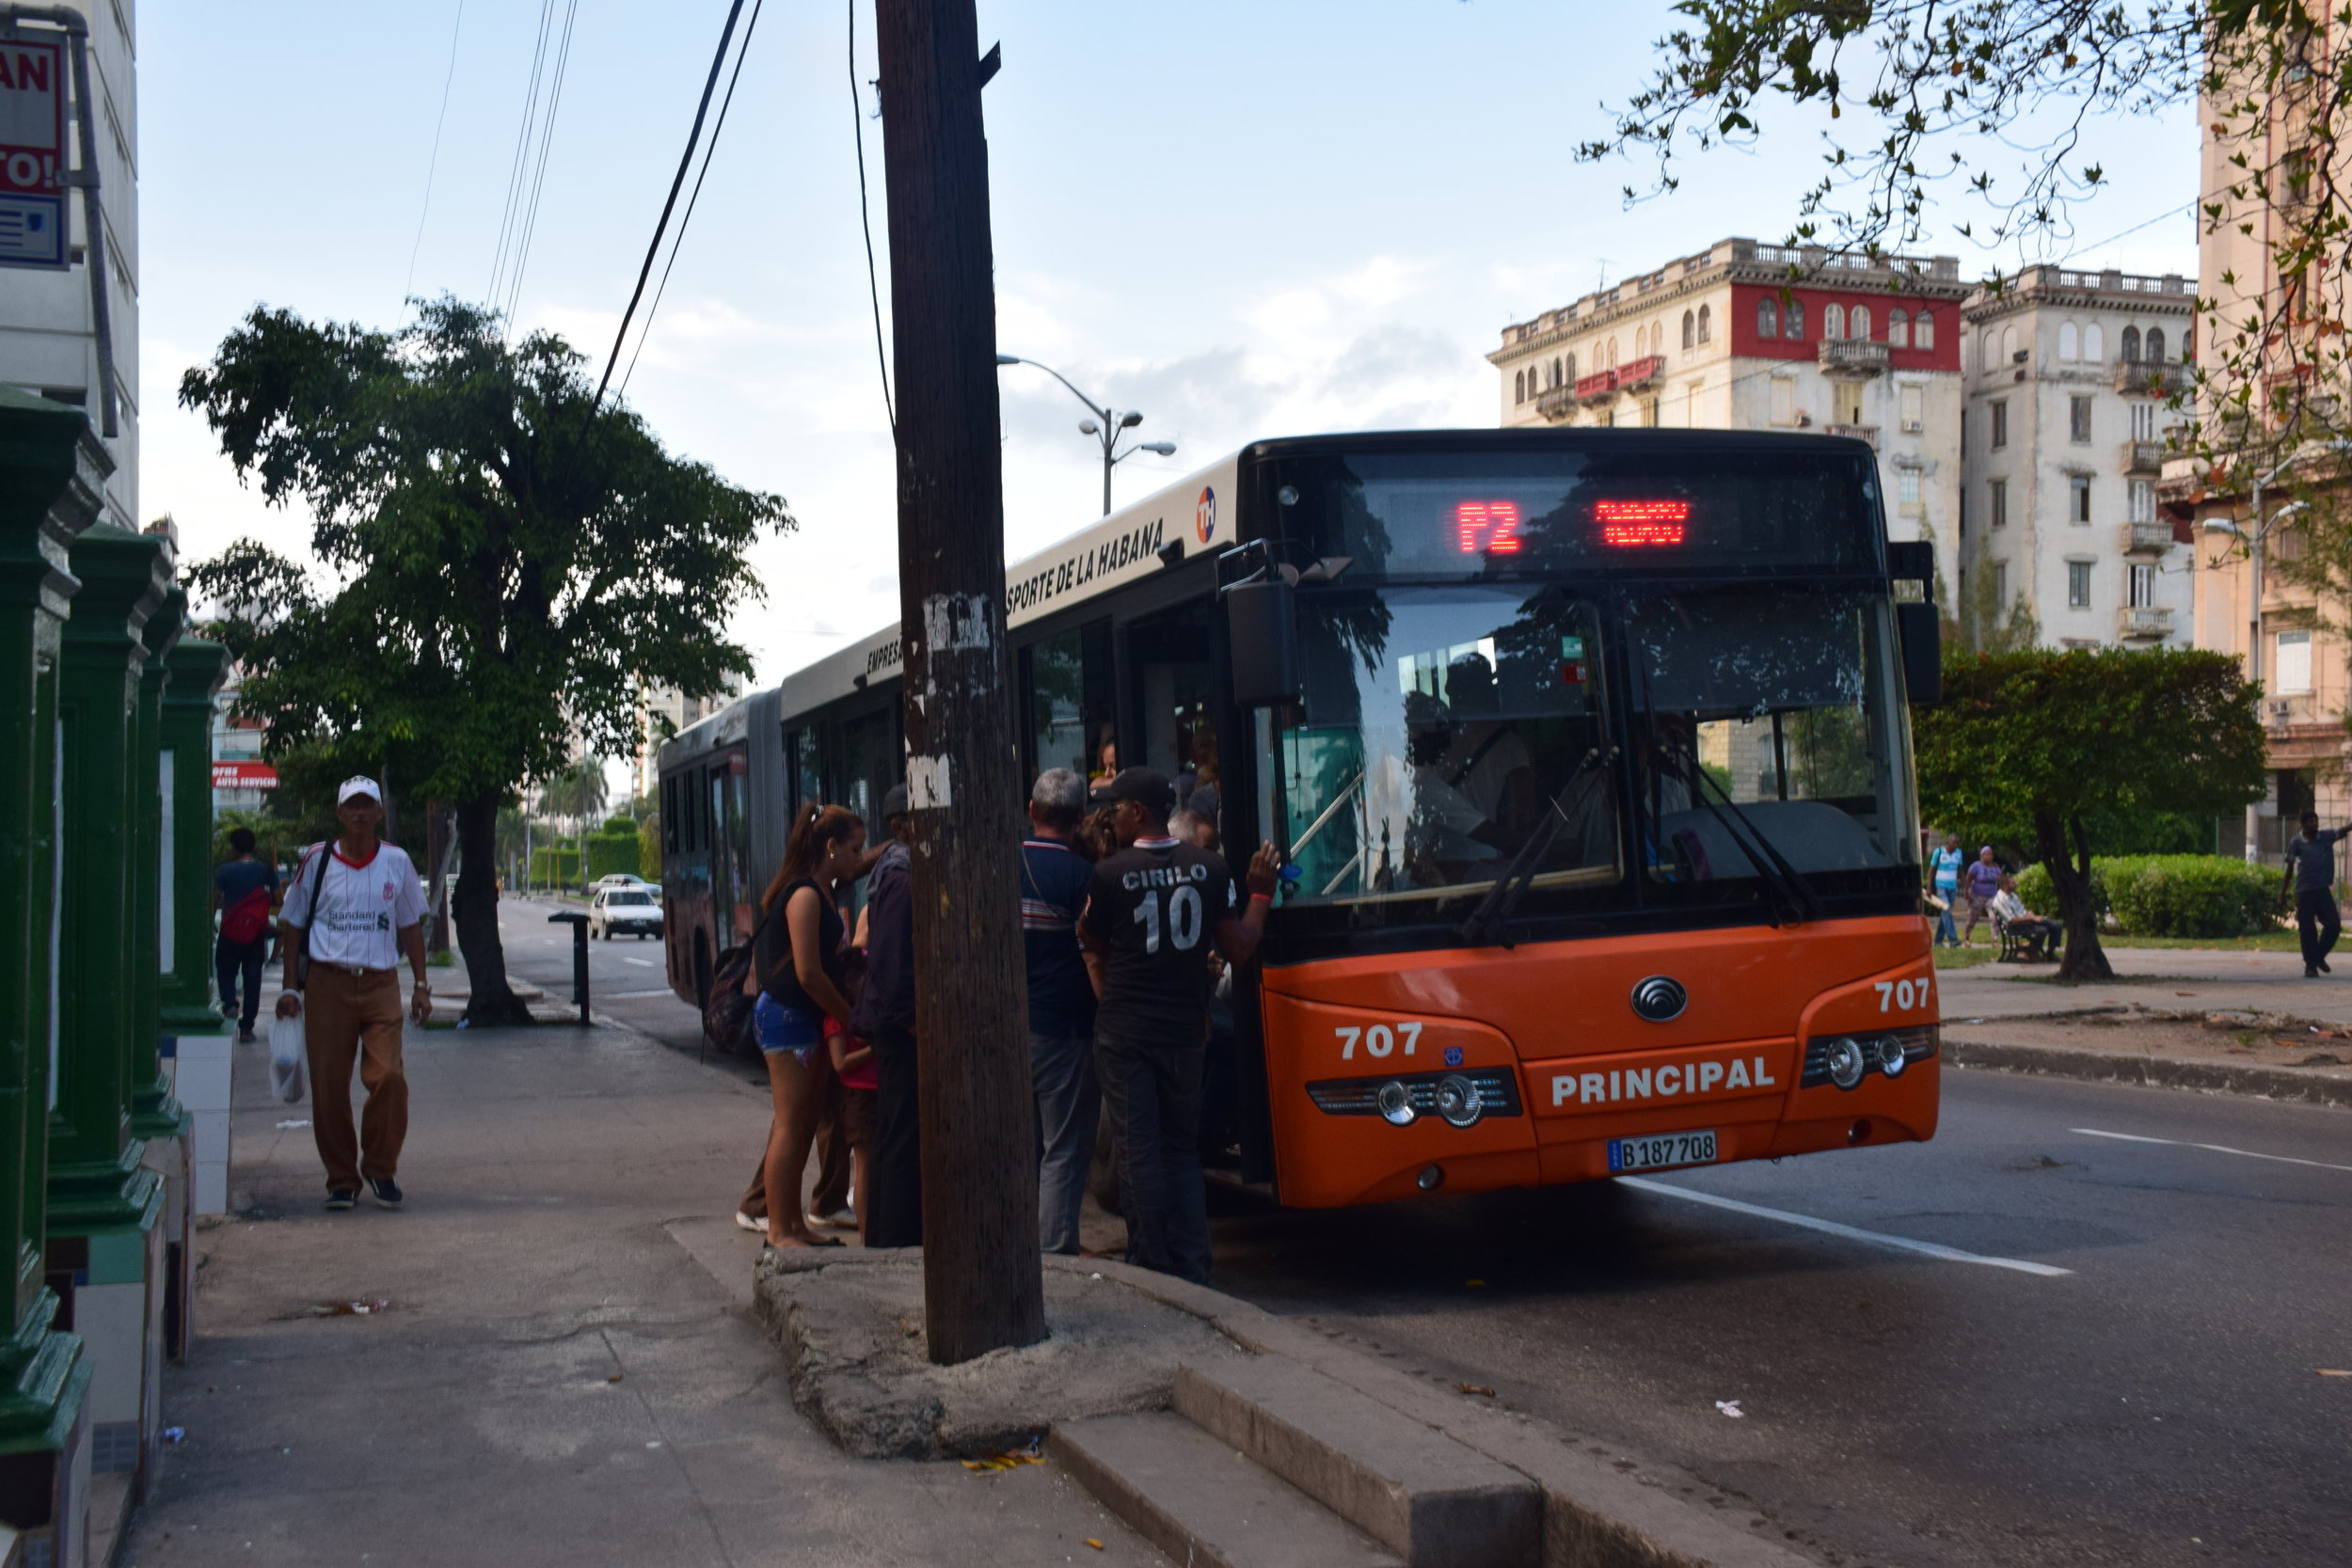 Taking the local bus is also another form of saving money trying to get around the city.